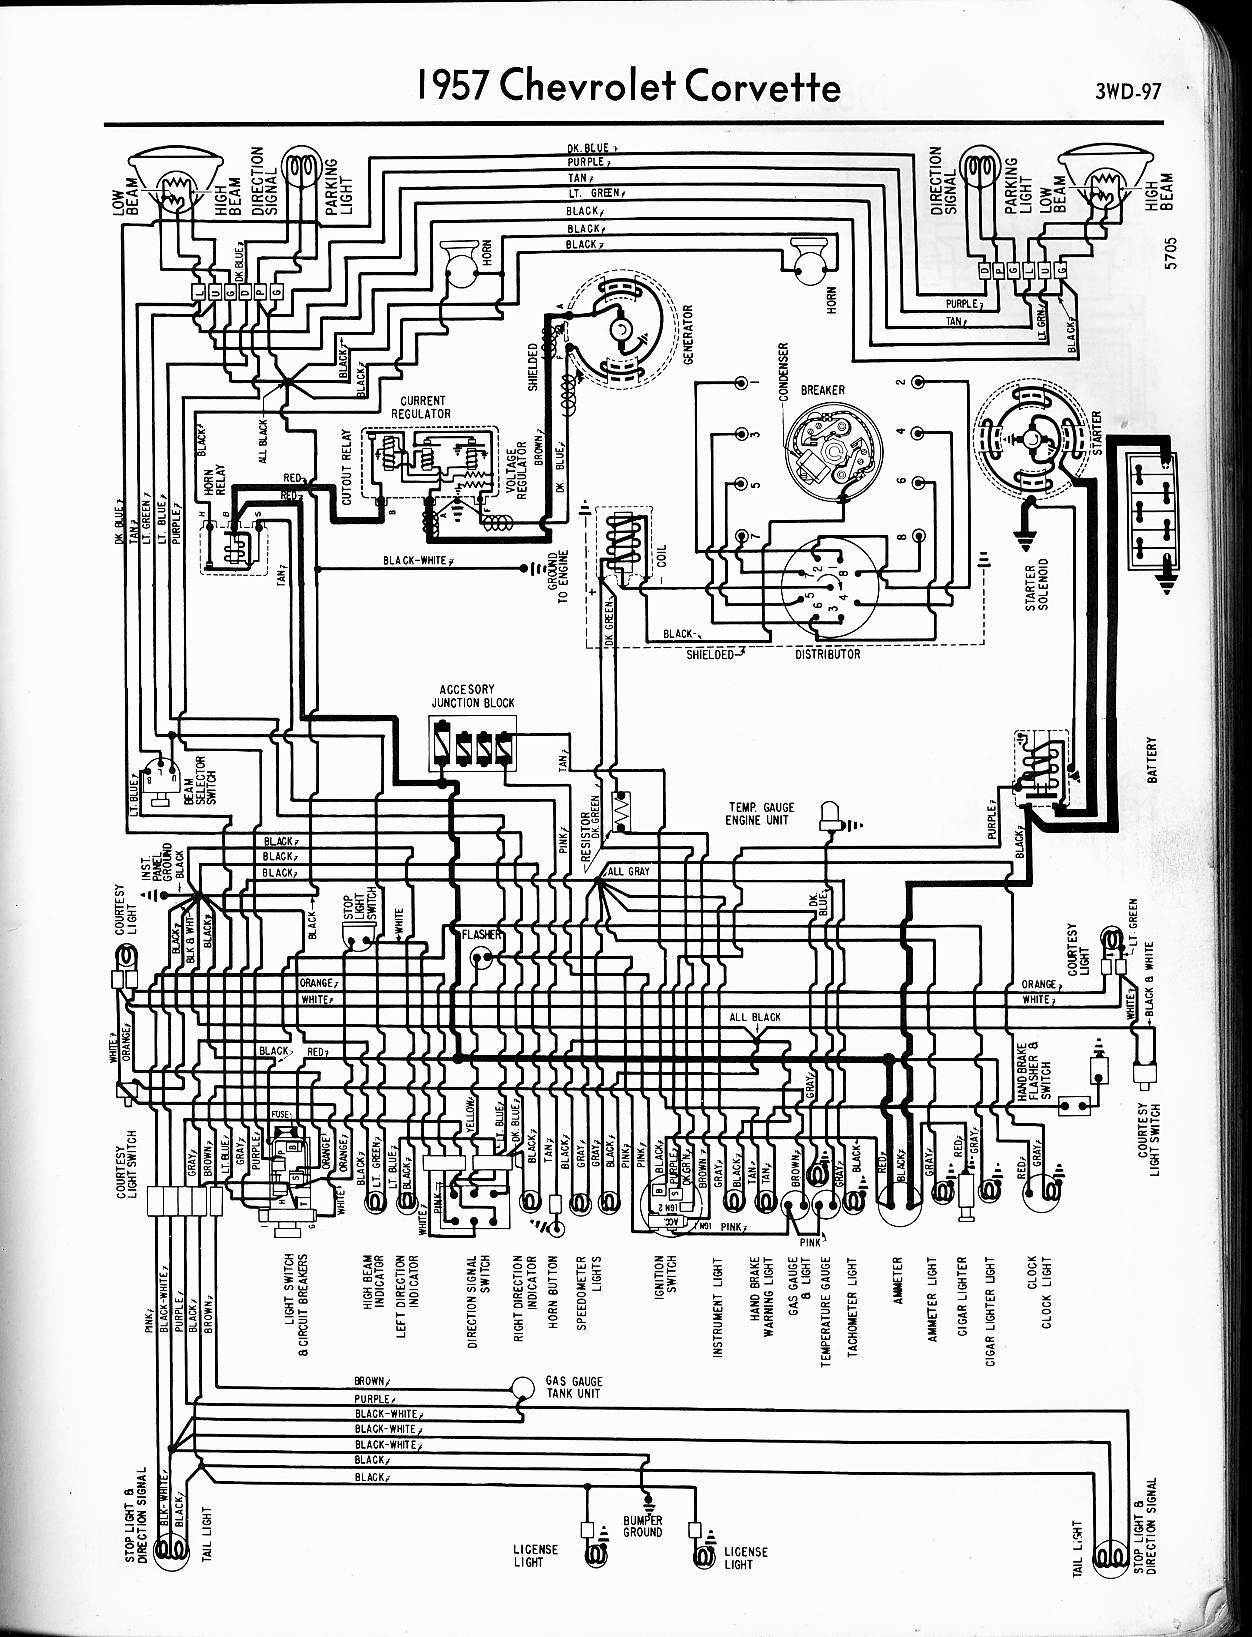 1965 c10 chevy truck starter wiring electrical diagram schematics rh zavoral genealogy com 1975 Chevy Truck Wiring Diagram 2004 Chevy Truck Starter Wiring Diagram